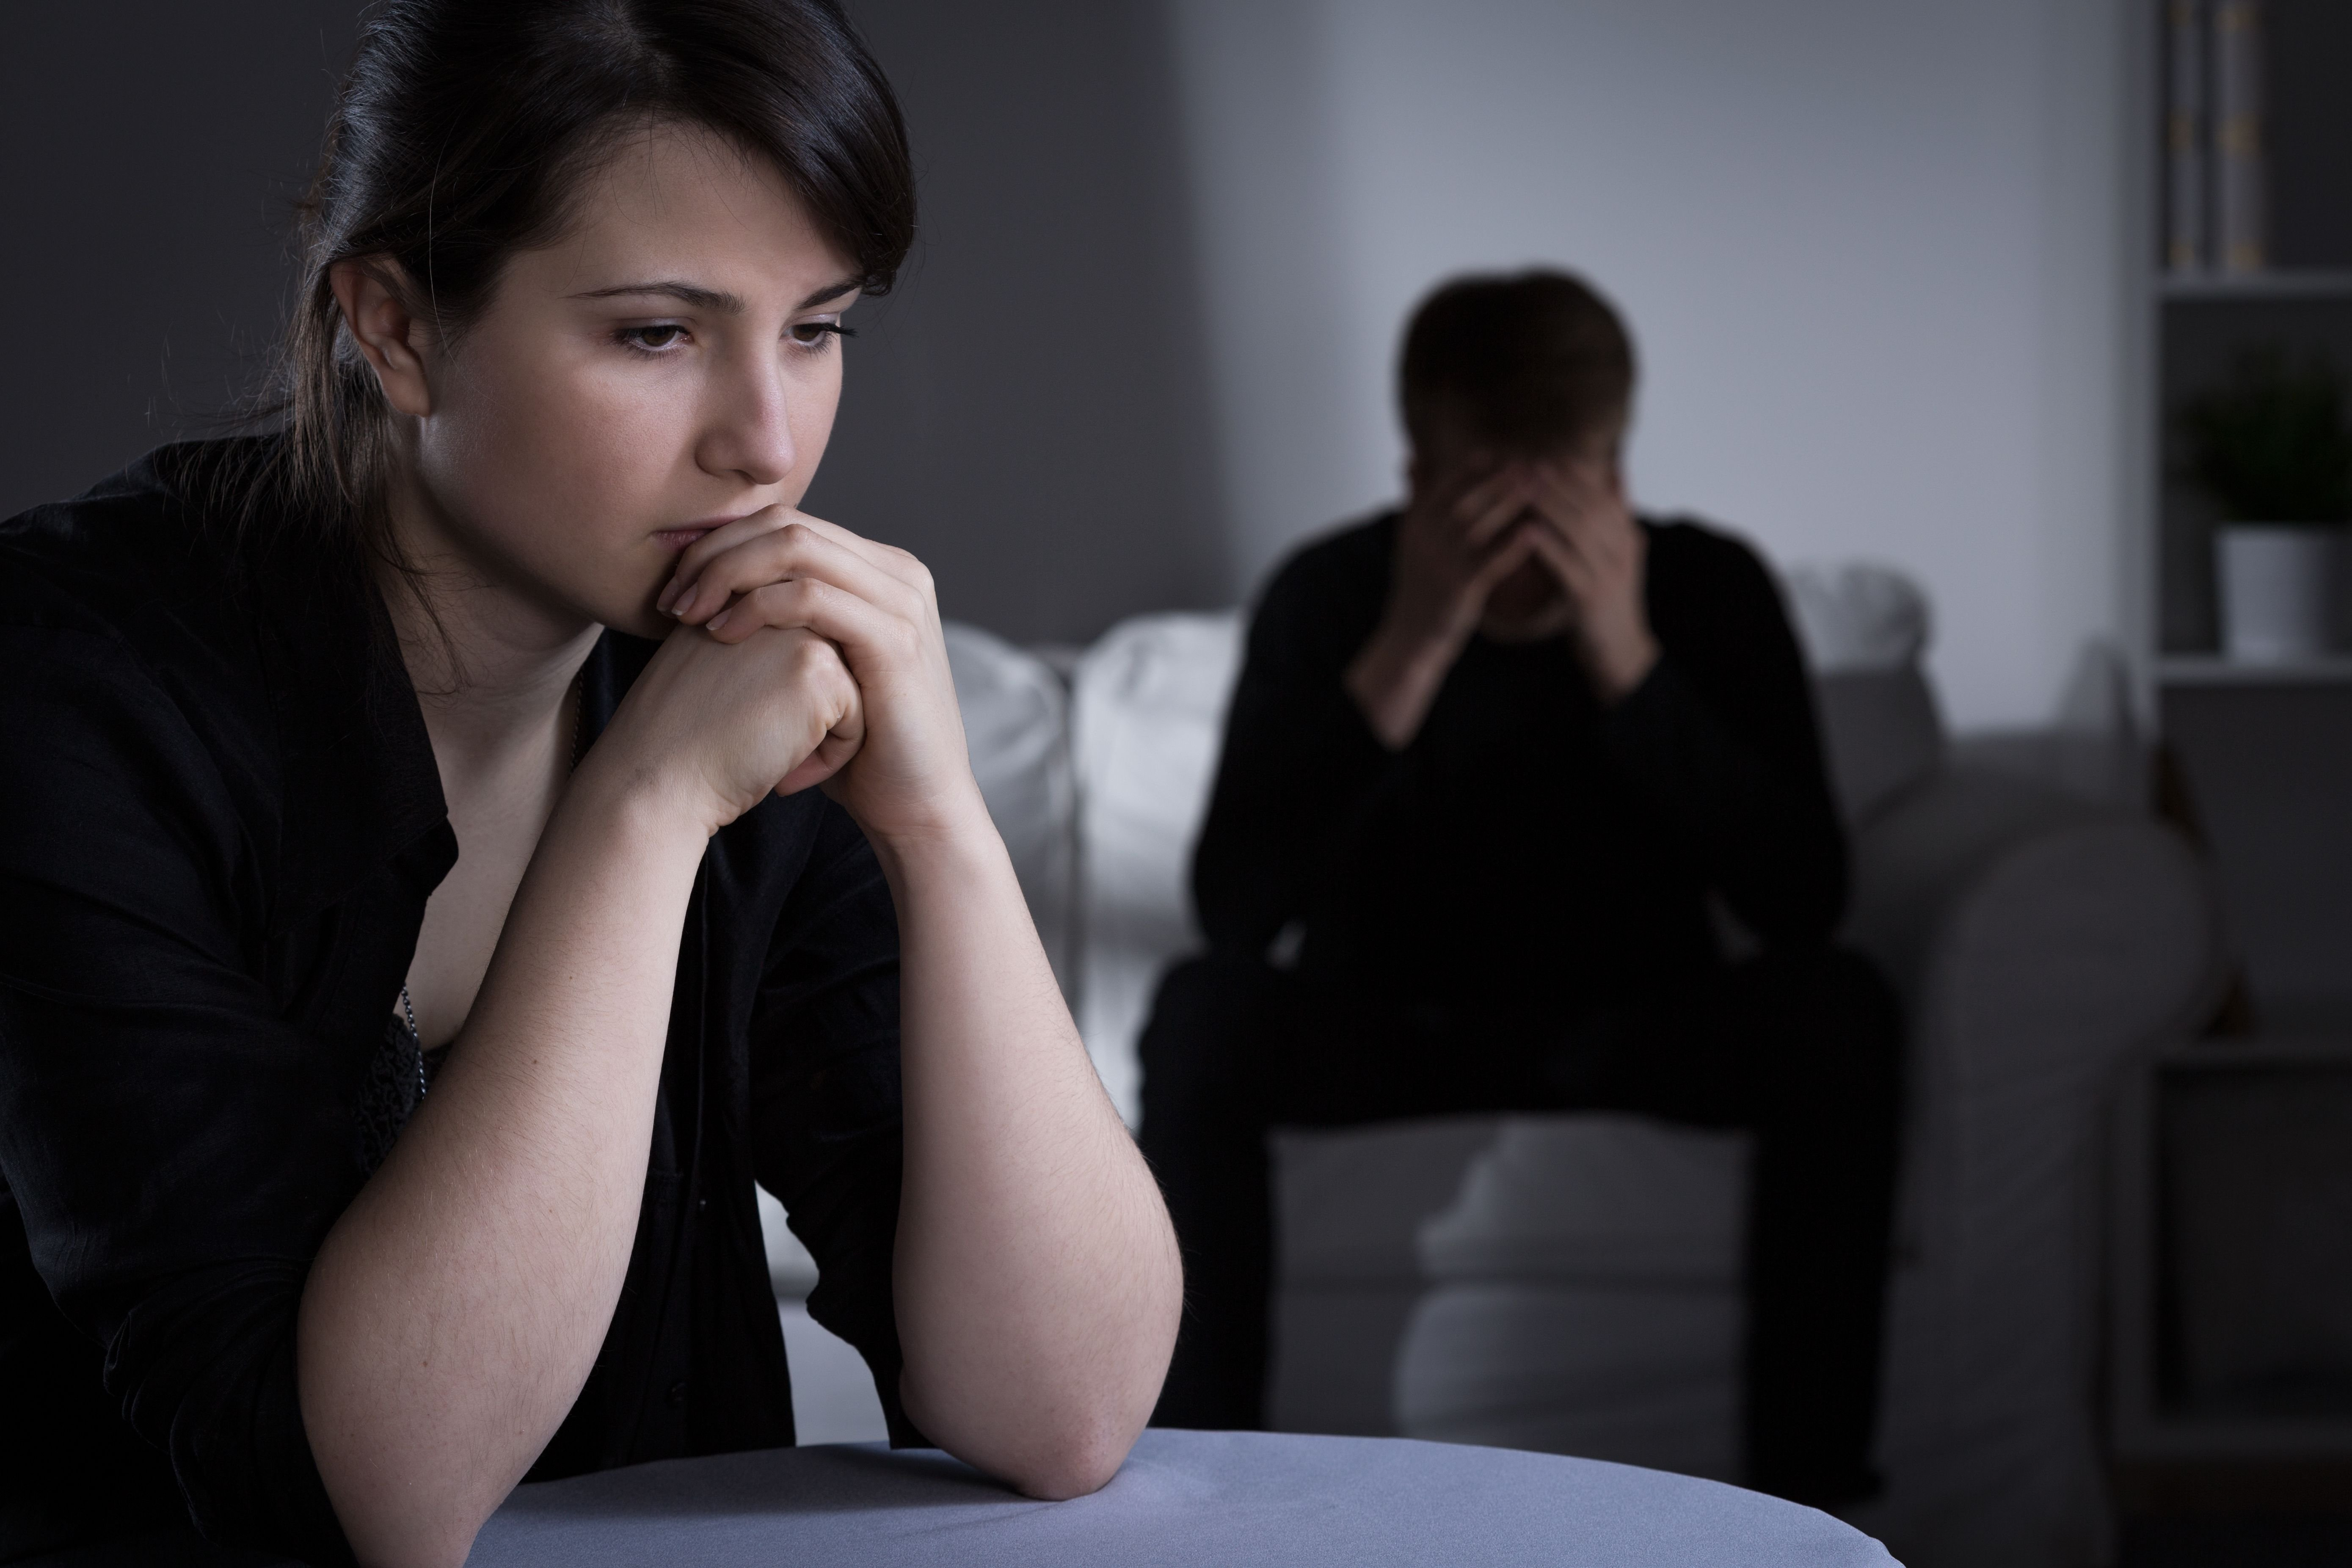 A woman looks in deep thought while a man sits behind her. | Source: Shutterstock